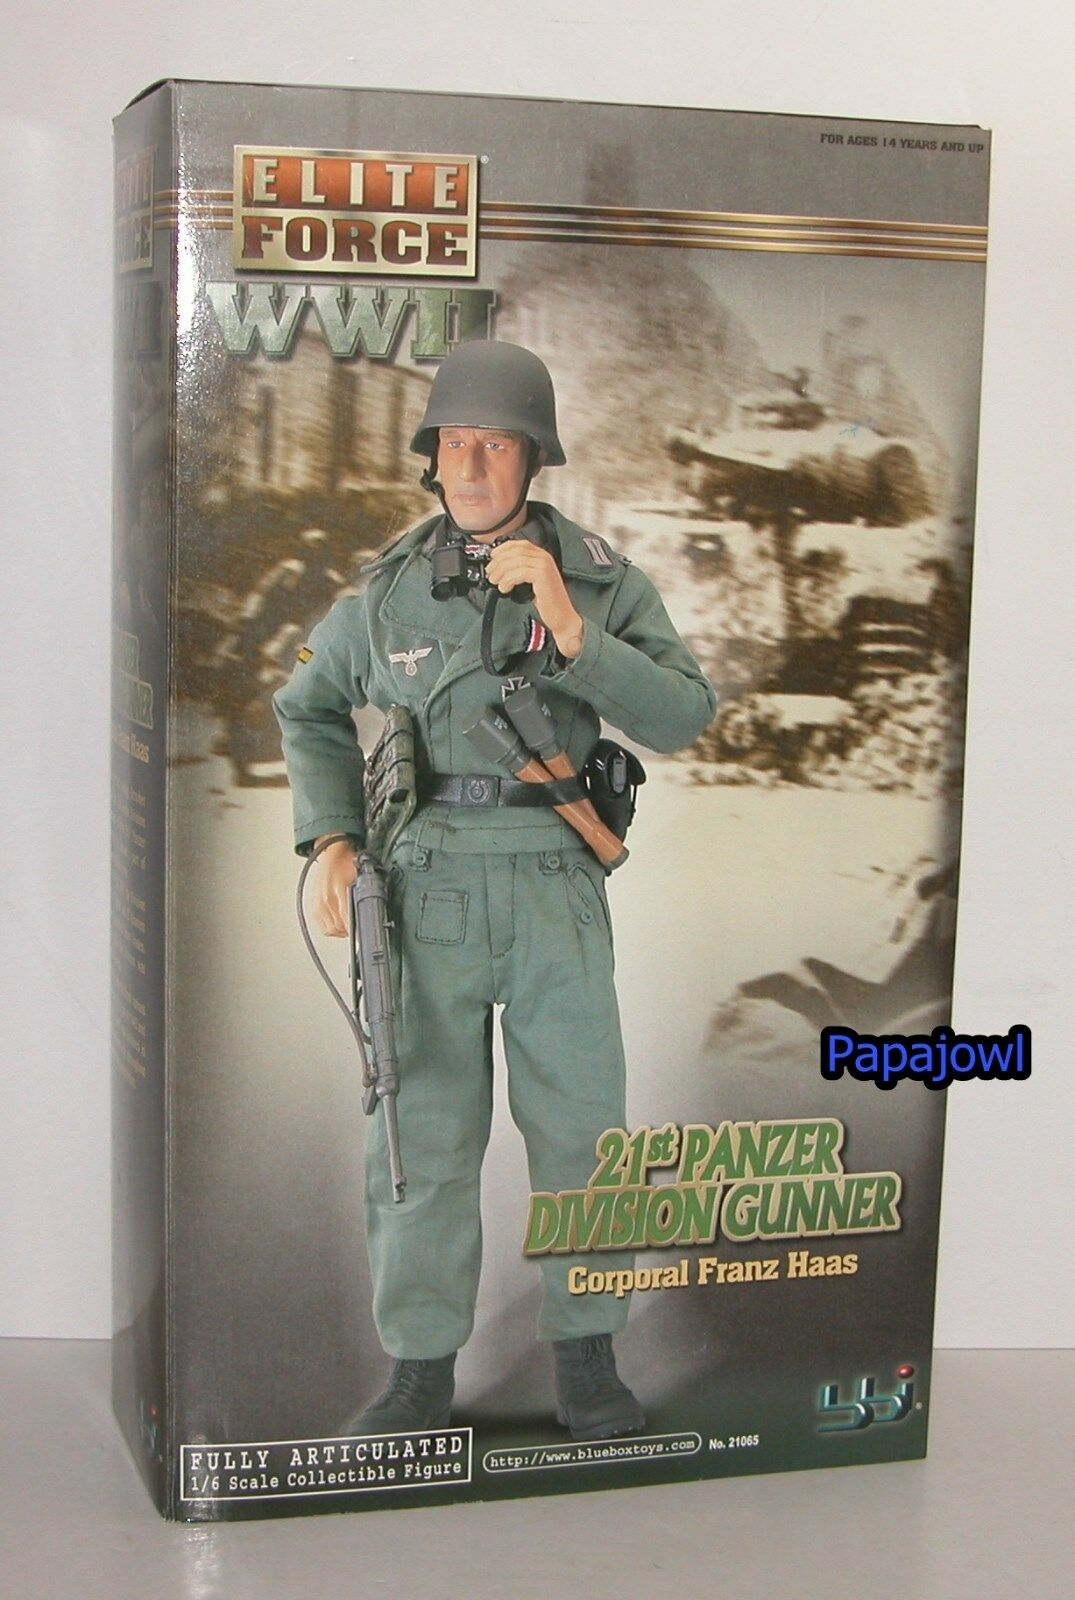 Elite Force WWII 21st Panzer Division Gunner Corporal Franz Hass 1 6 Figure